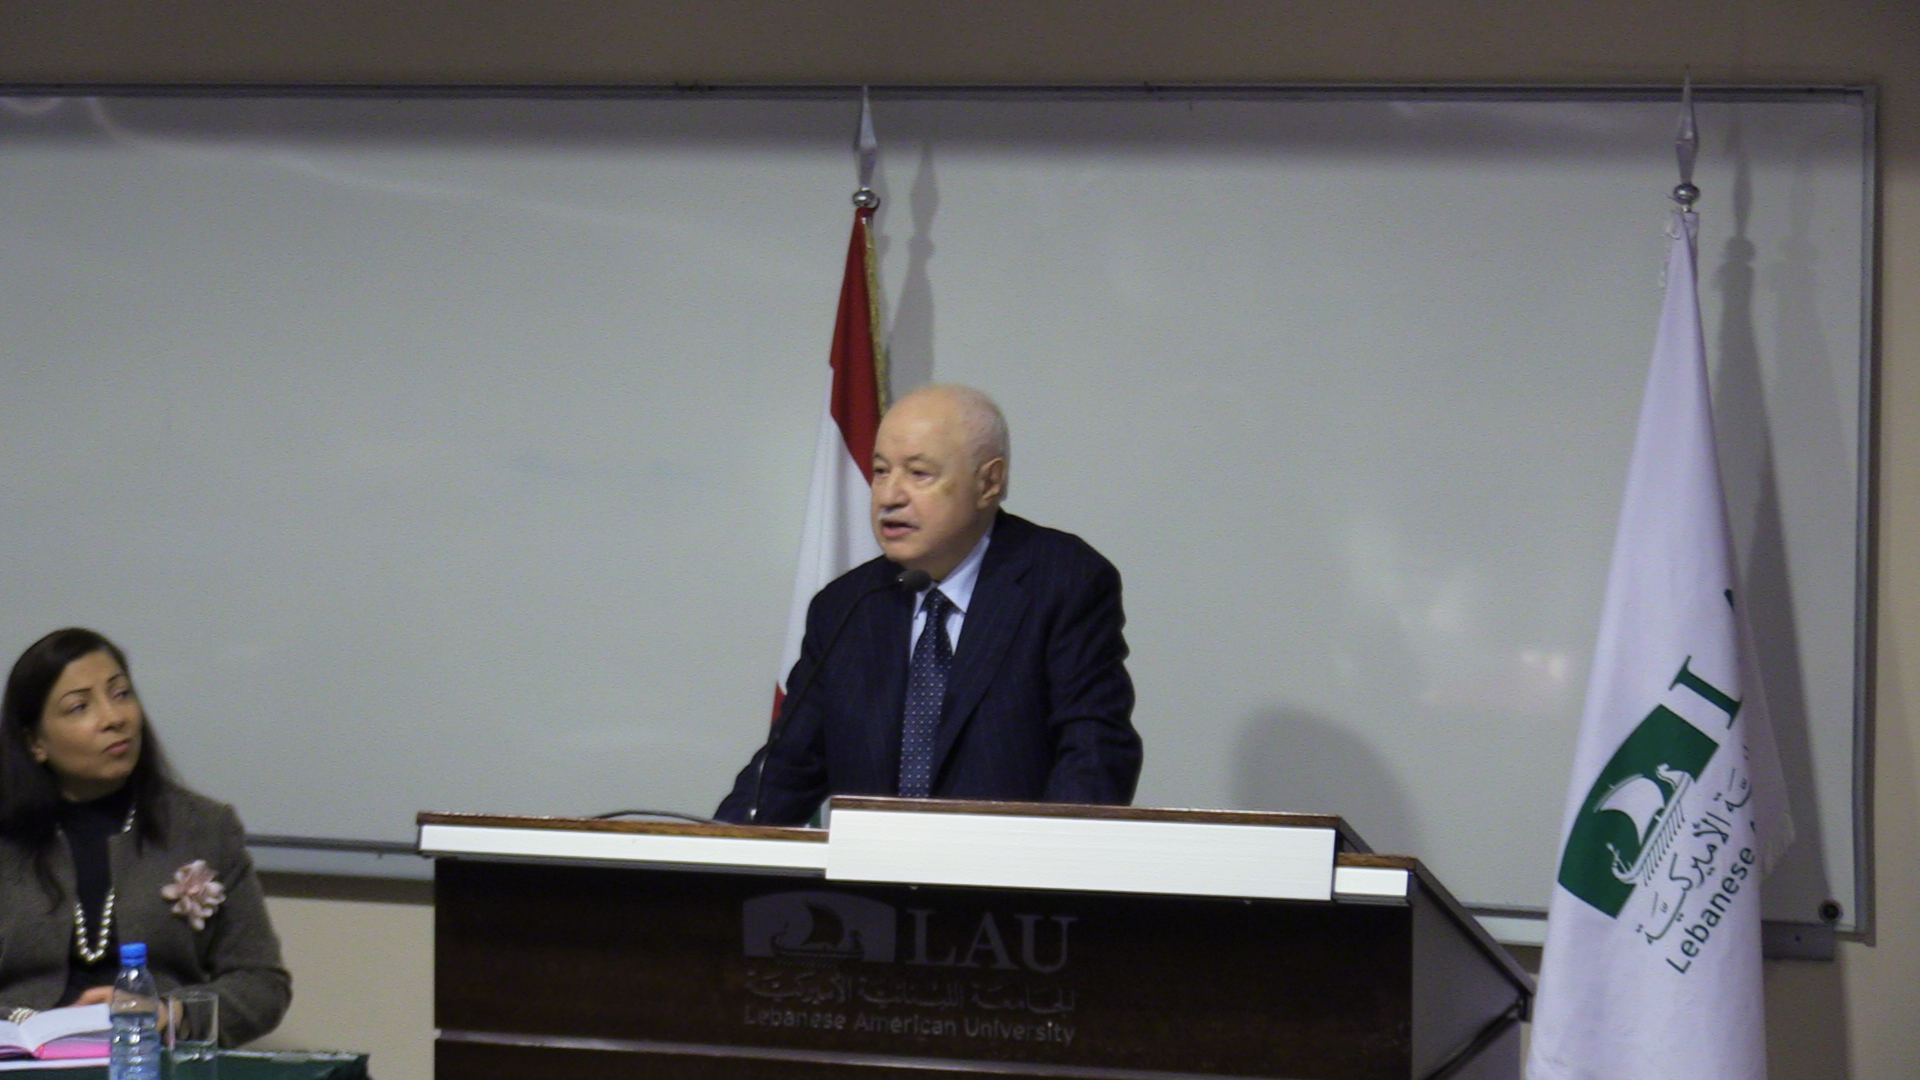 HE Dr. Talal Abu-Ghazaleh's speech entitled 'Is Populism Devouring Democracy?' at the Lebanese American University – Lebanon .